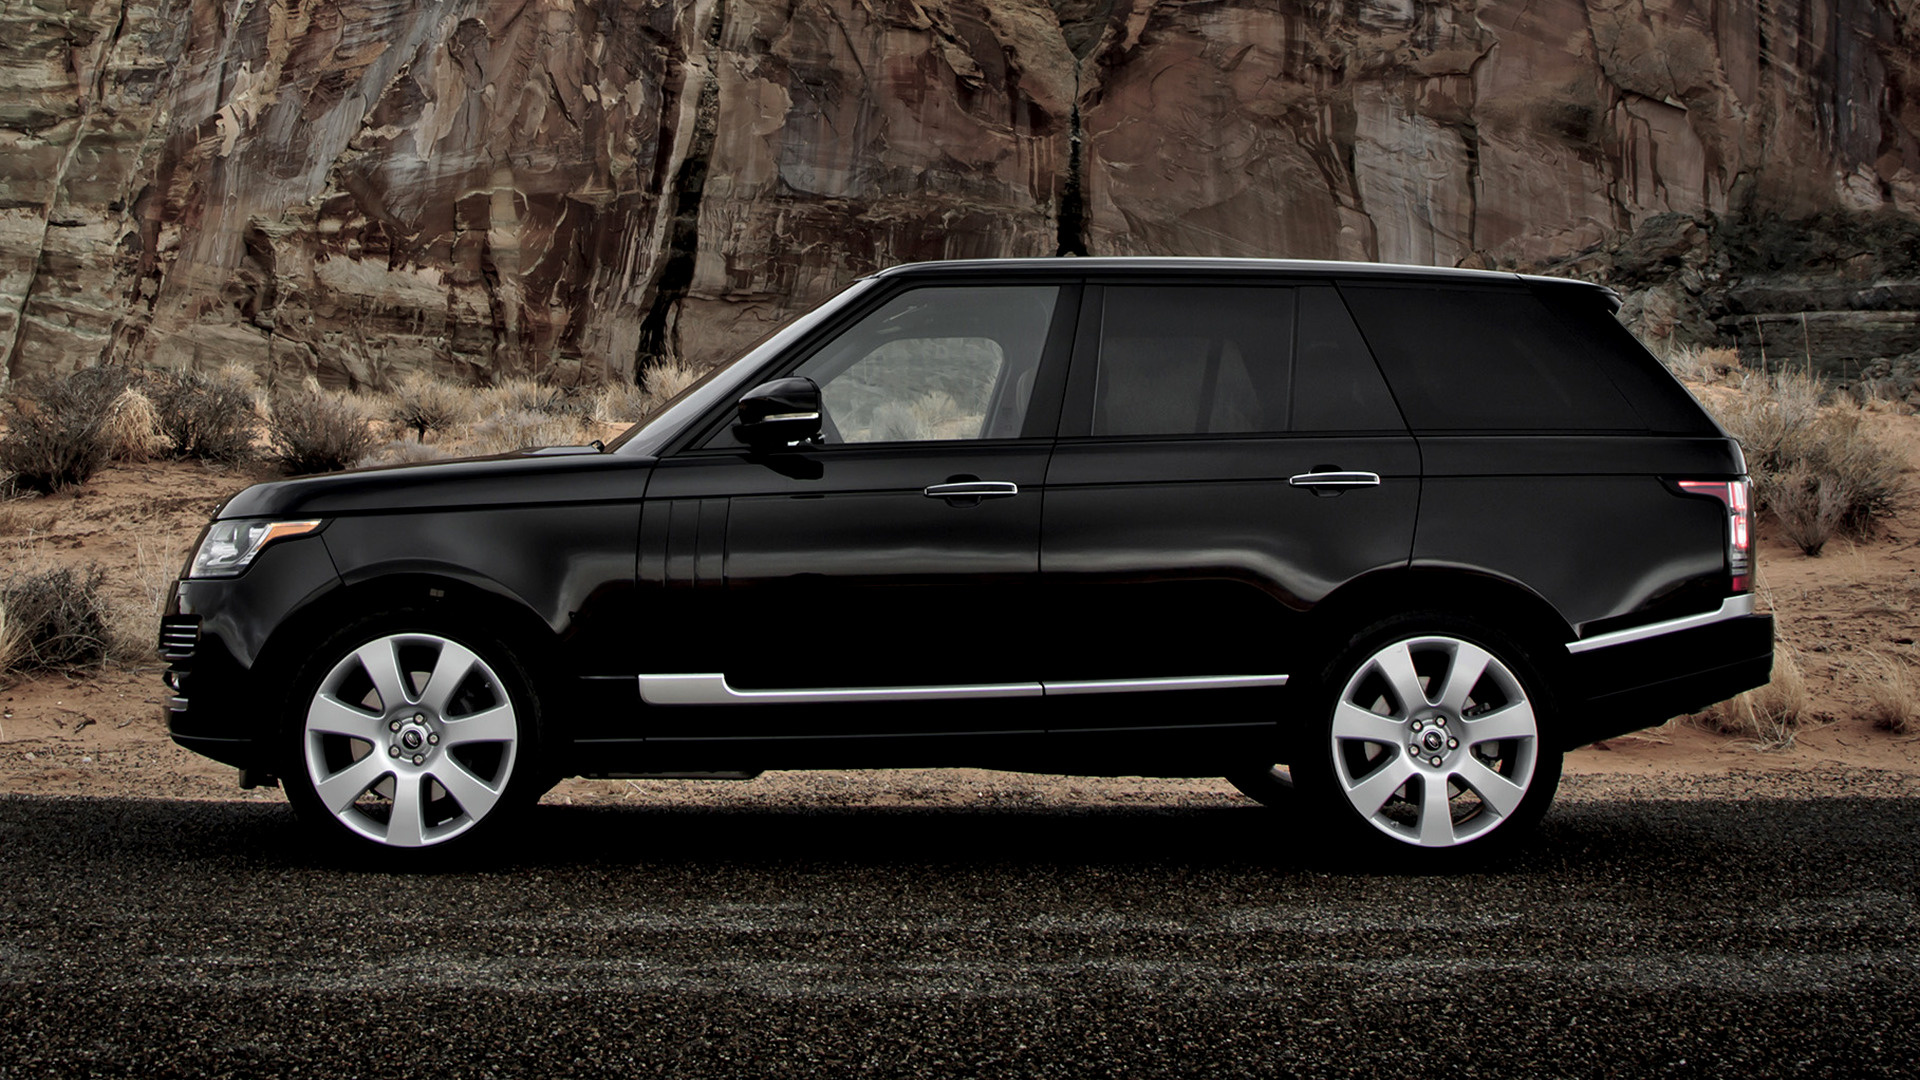 Land Rover Autobiography >> 2013 Range Rover Autobiography (US) - Wallpapers and HD Images | Car Pixel